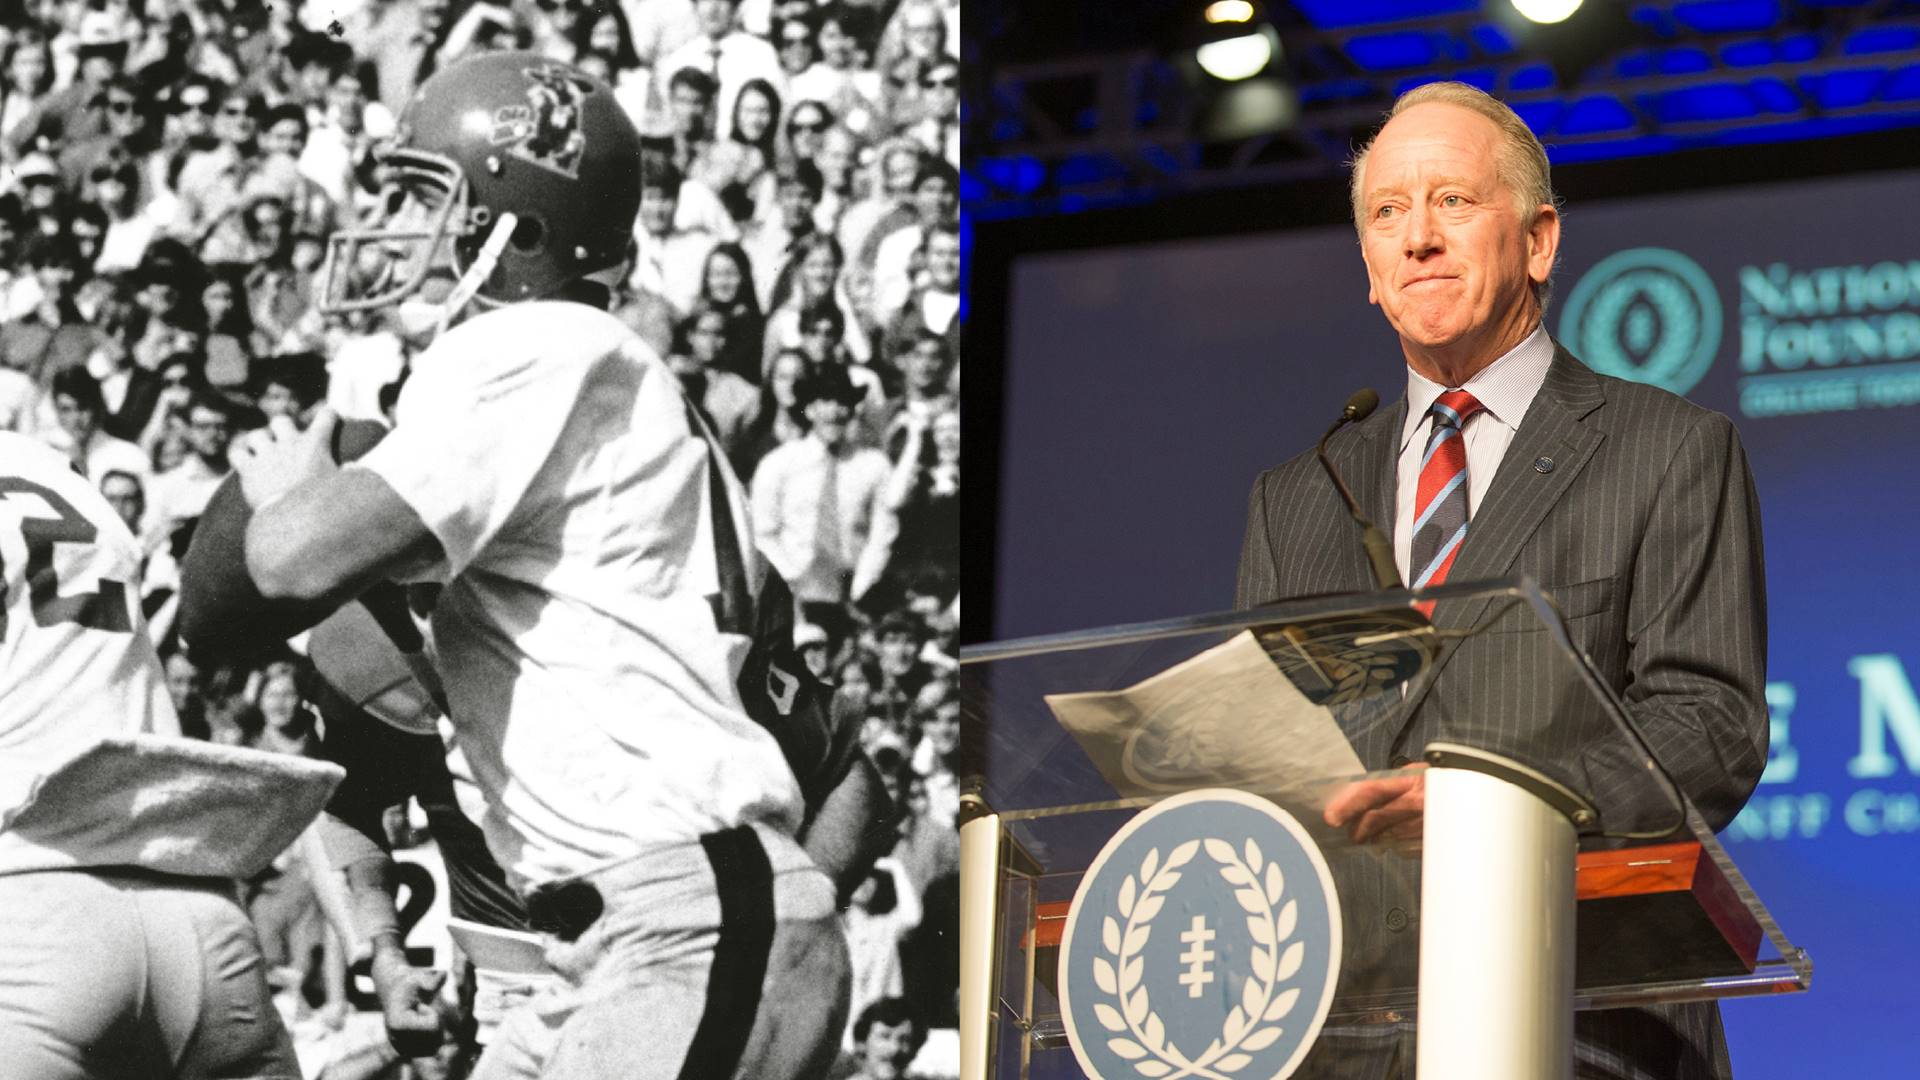 LSHOF inductee Archie Manning to receive multiple awards for efforts off the football field